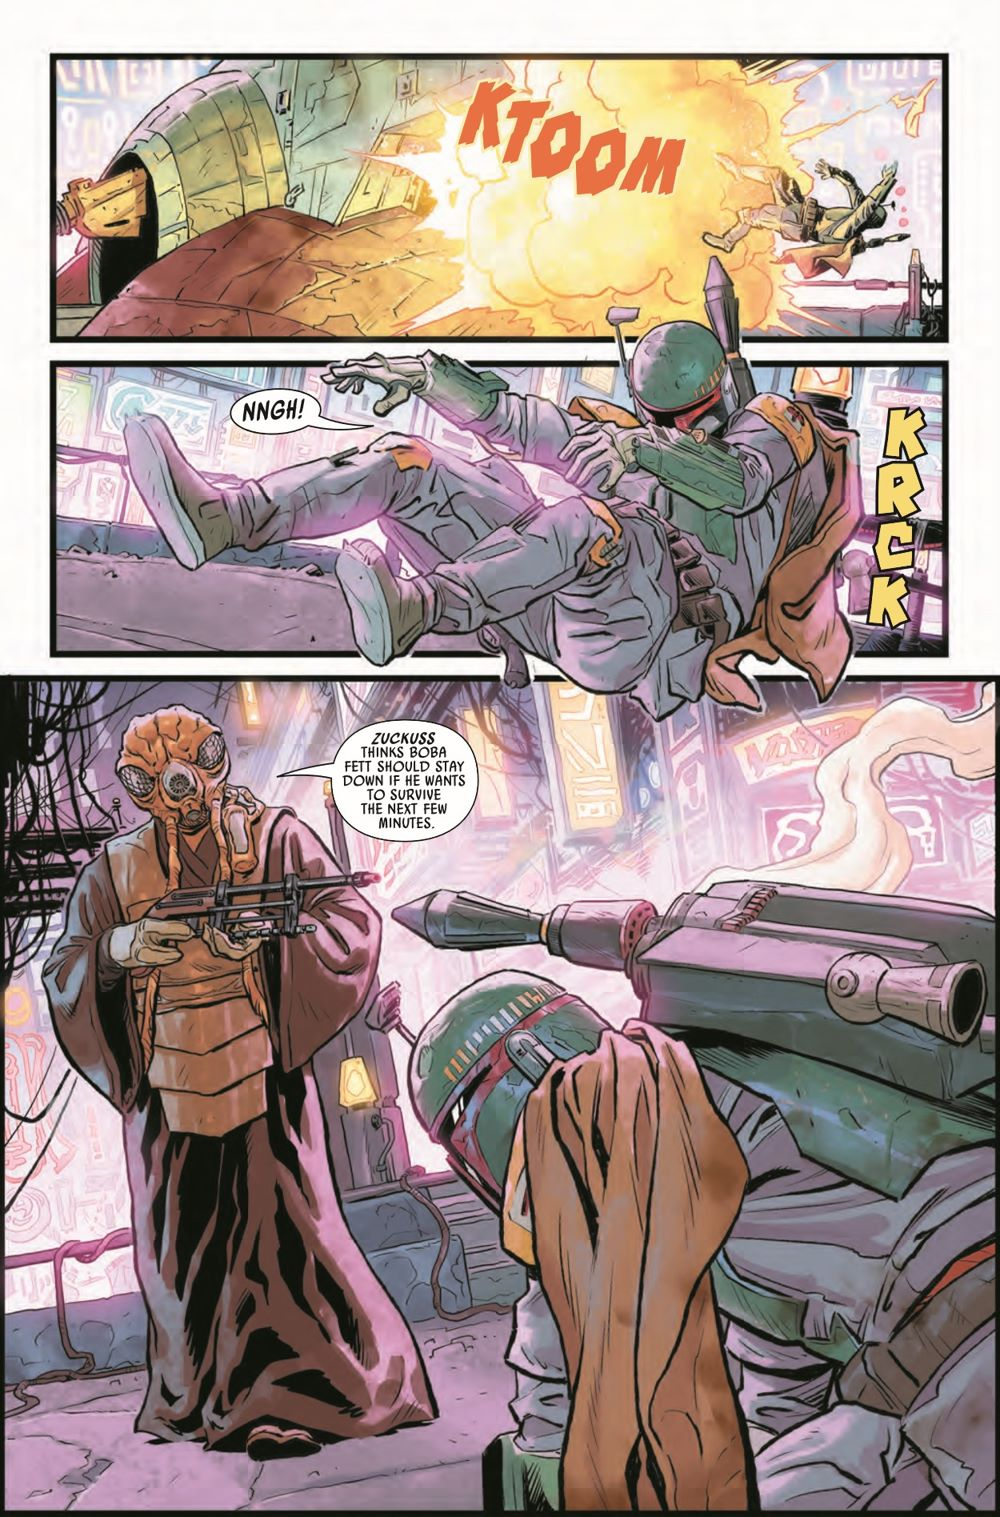 STWWAROTBH2021001_Preview-7 ComicList Previews: STAR WARS WAR OF THE BOUNTY HUNTERS #1 (OF 5)